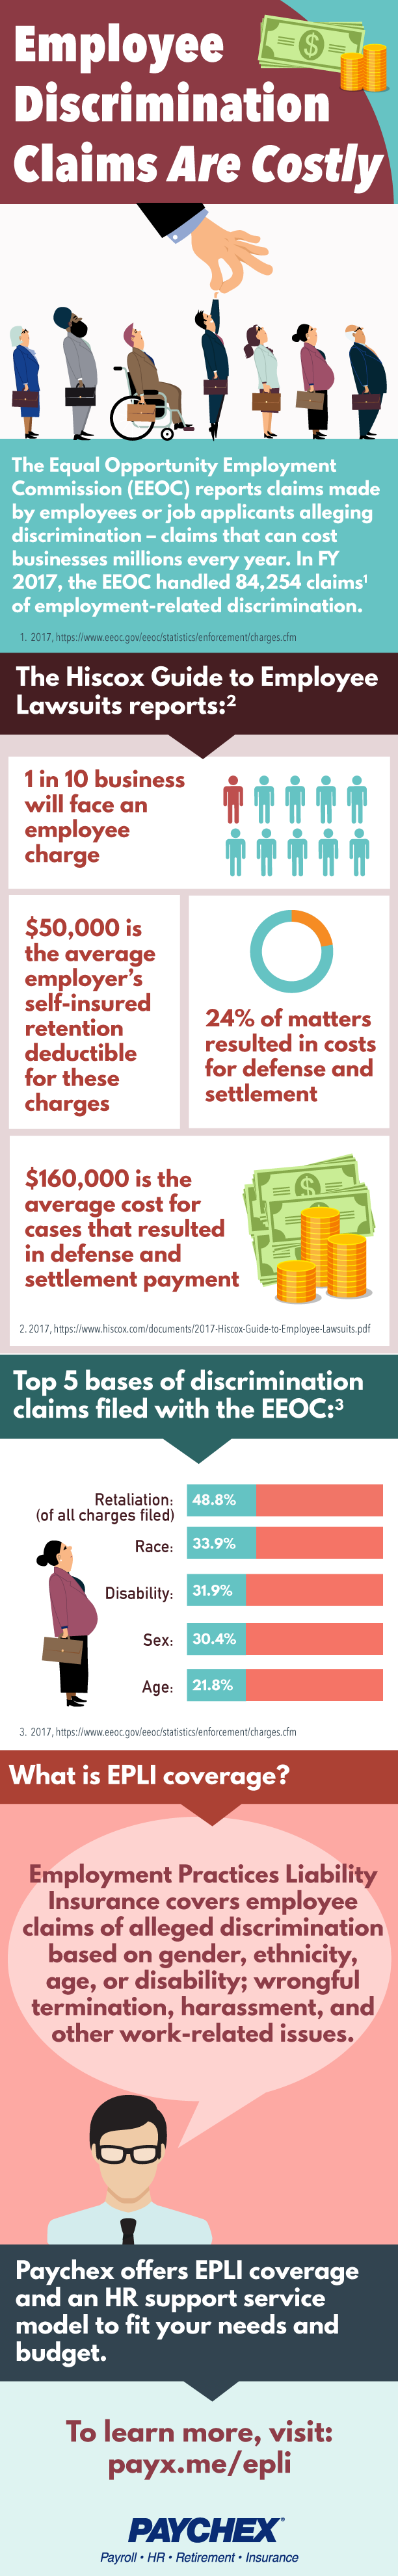 Infographic: Employee Discrimination Claims Are Costly